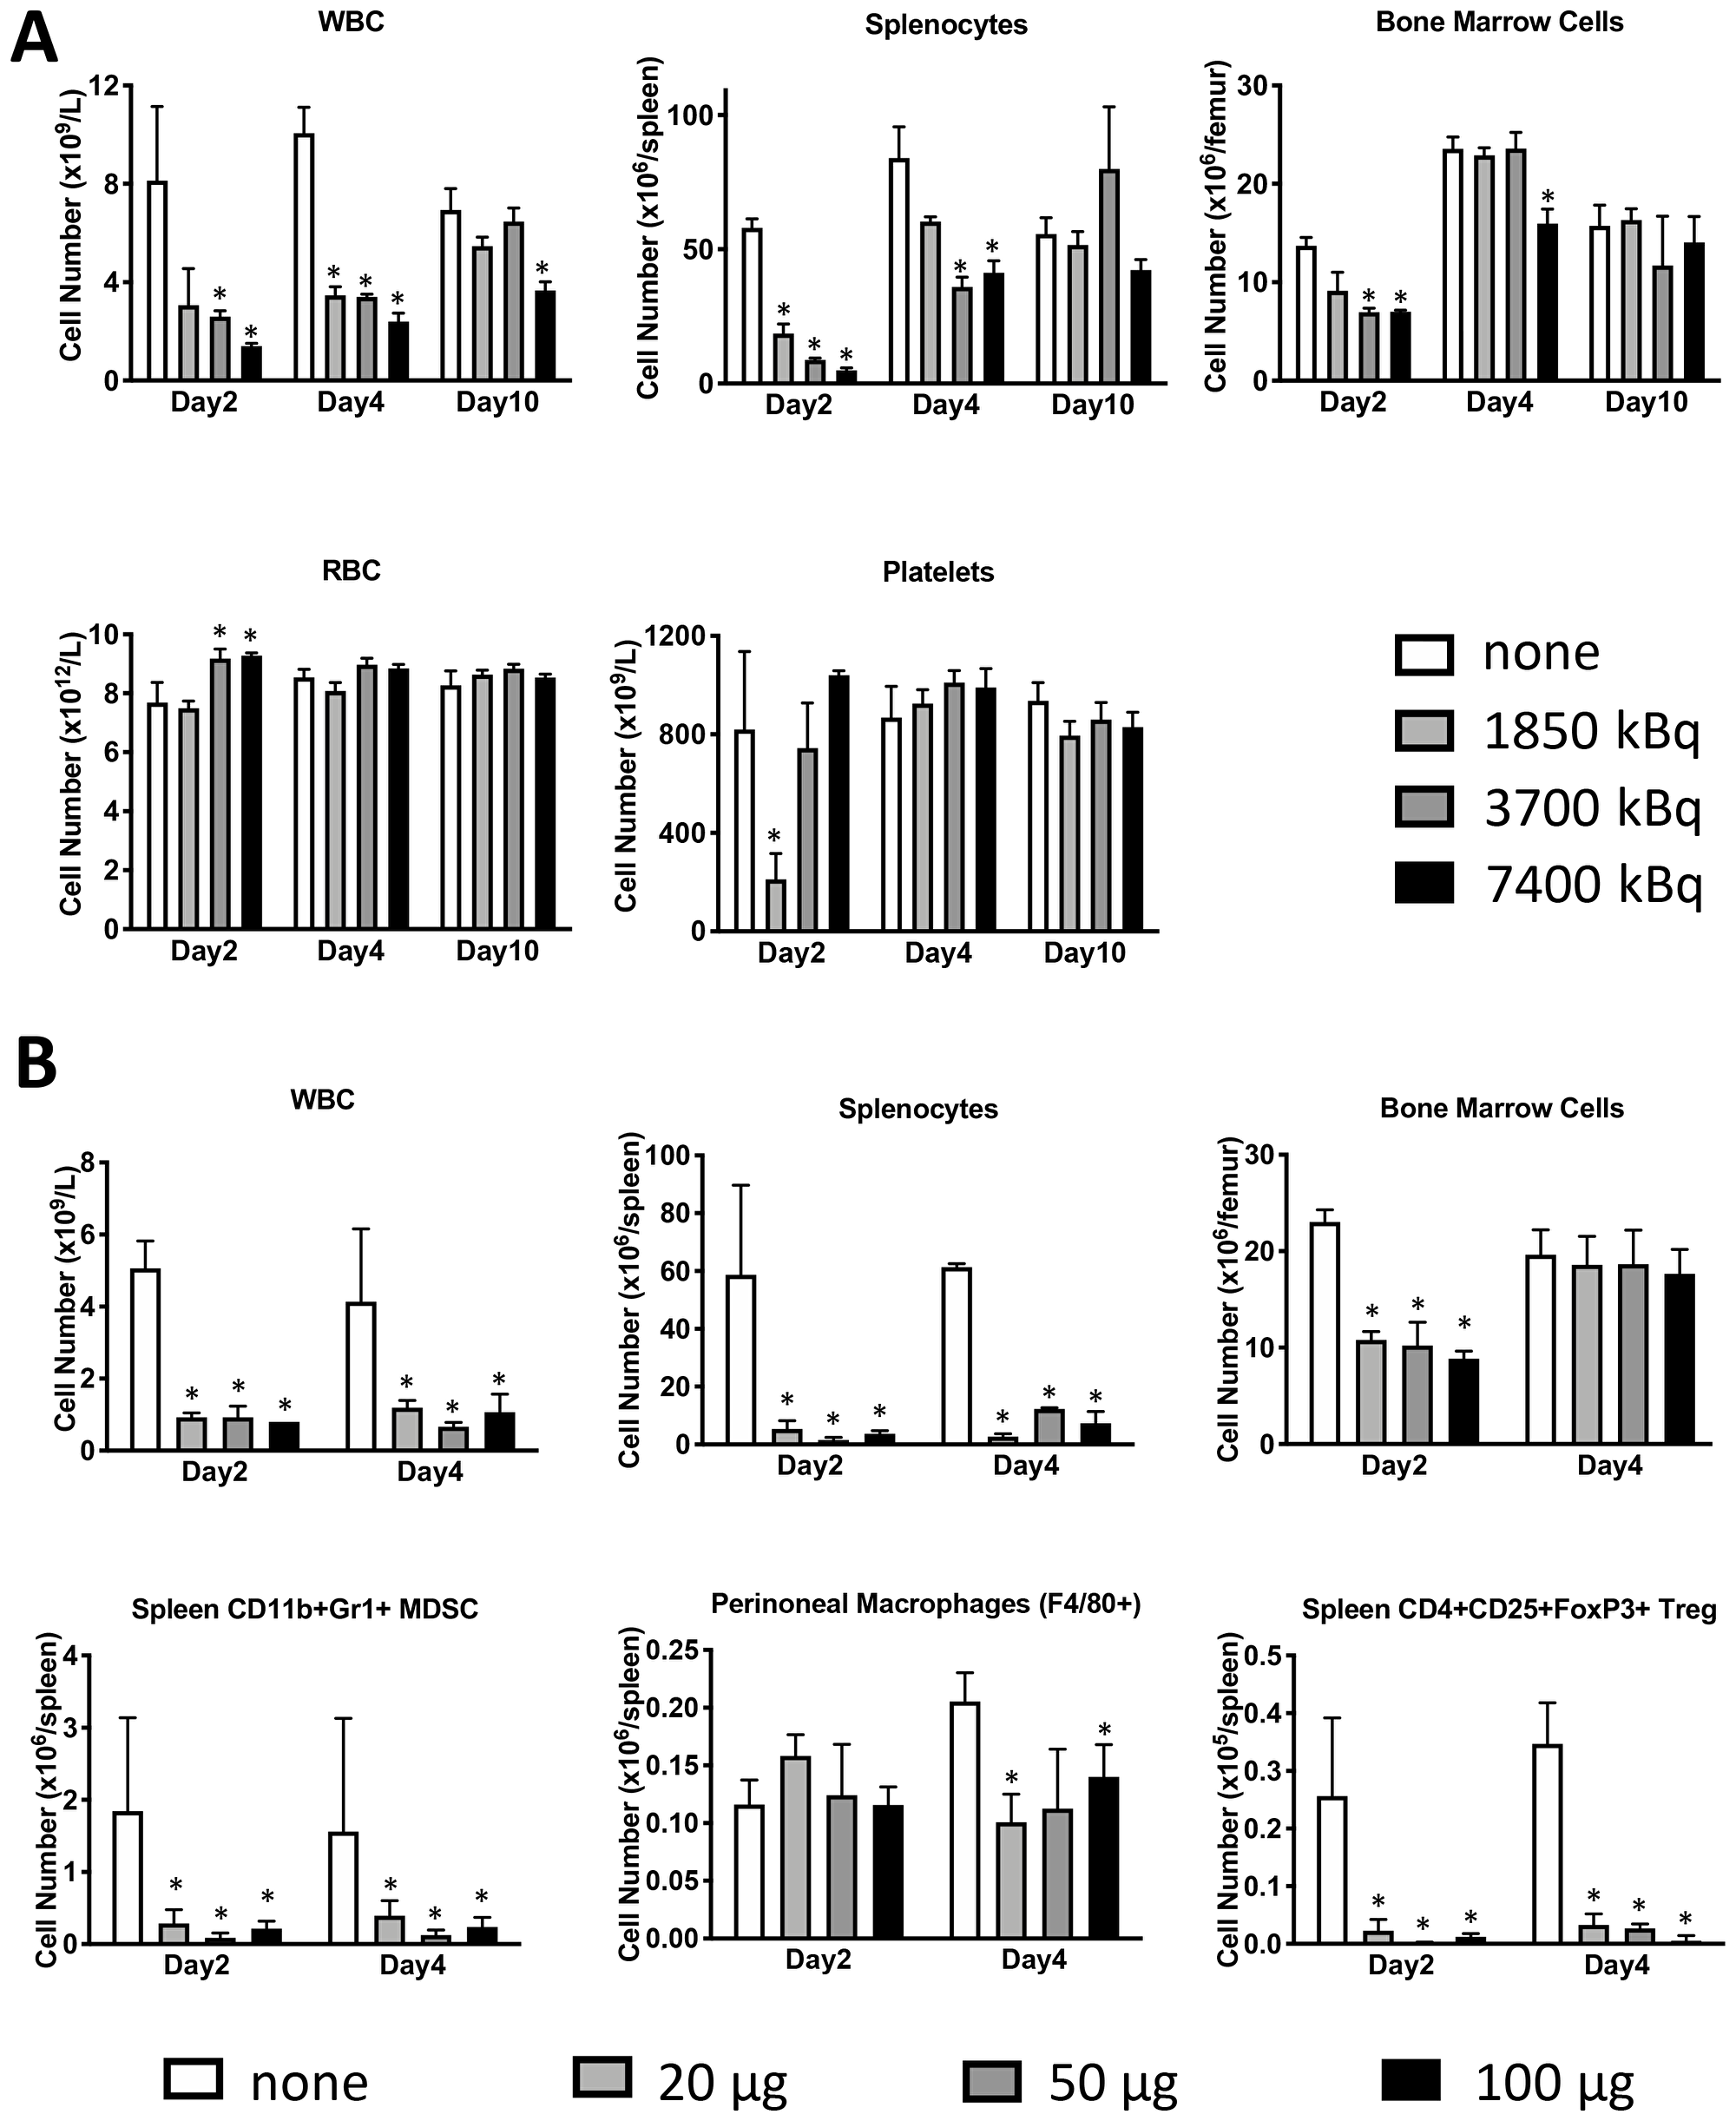 Lymphodepletion with 131I-labeled anti-CD45 30F11 antibody preserves bone marrow cells, platelets, and red blood cells but depletes splenocytes, Tregs and MDSC.